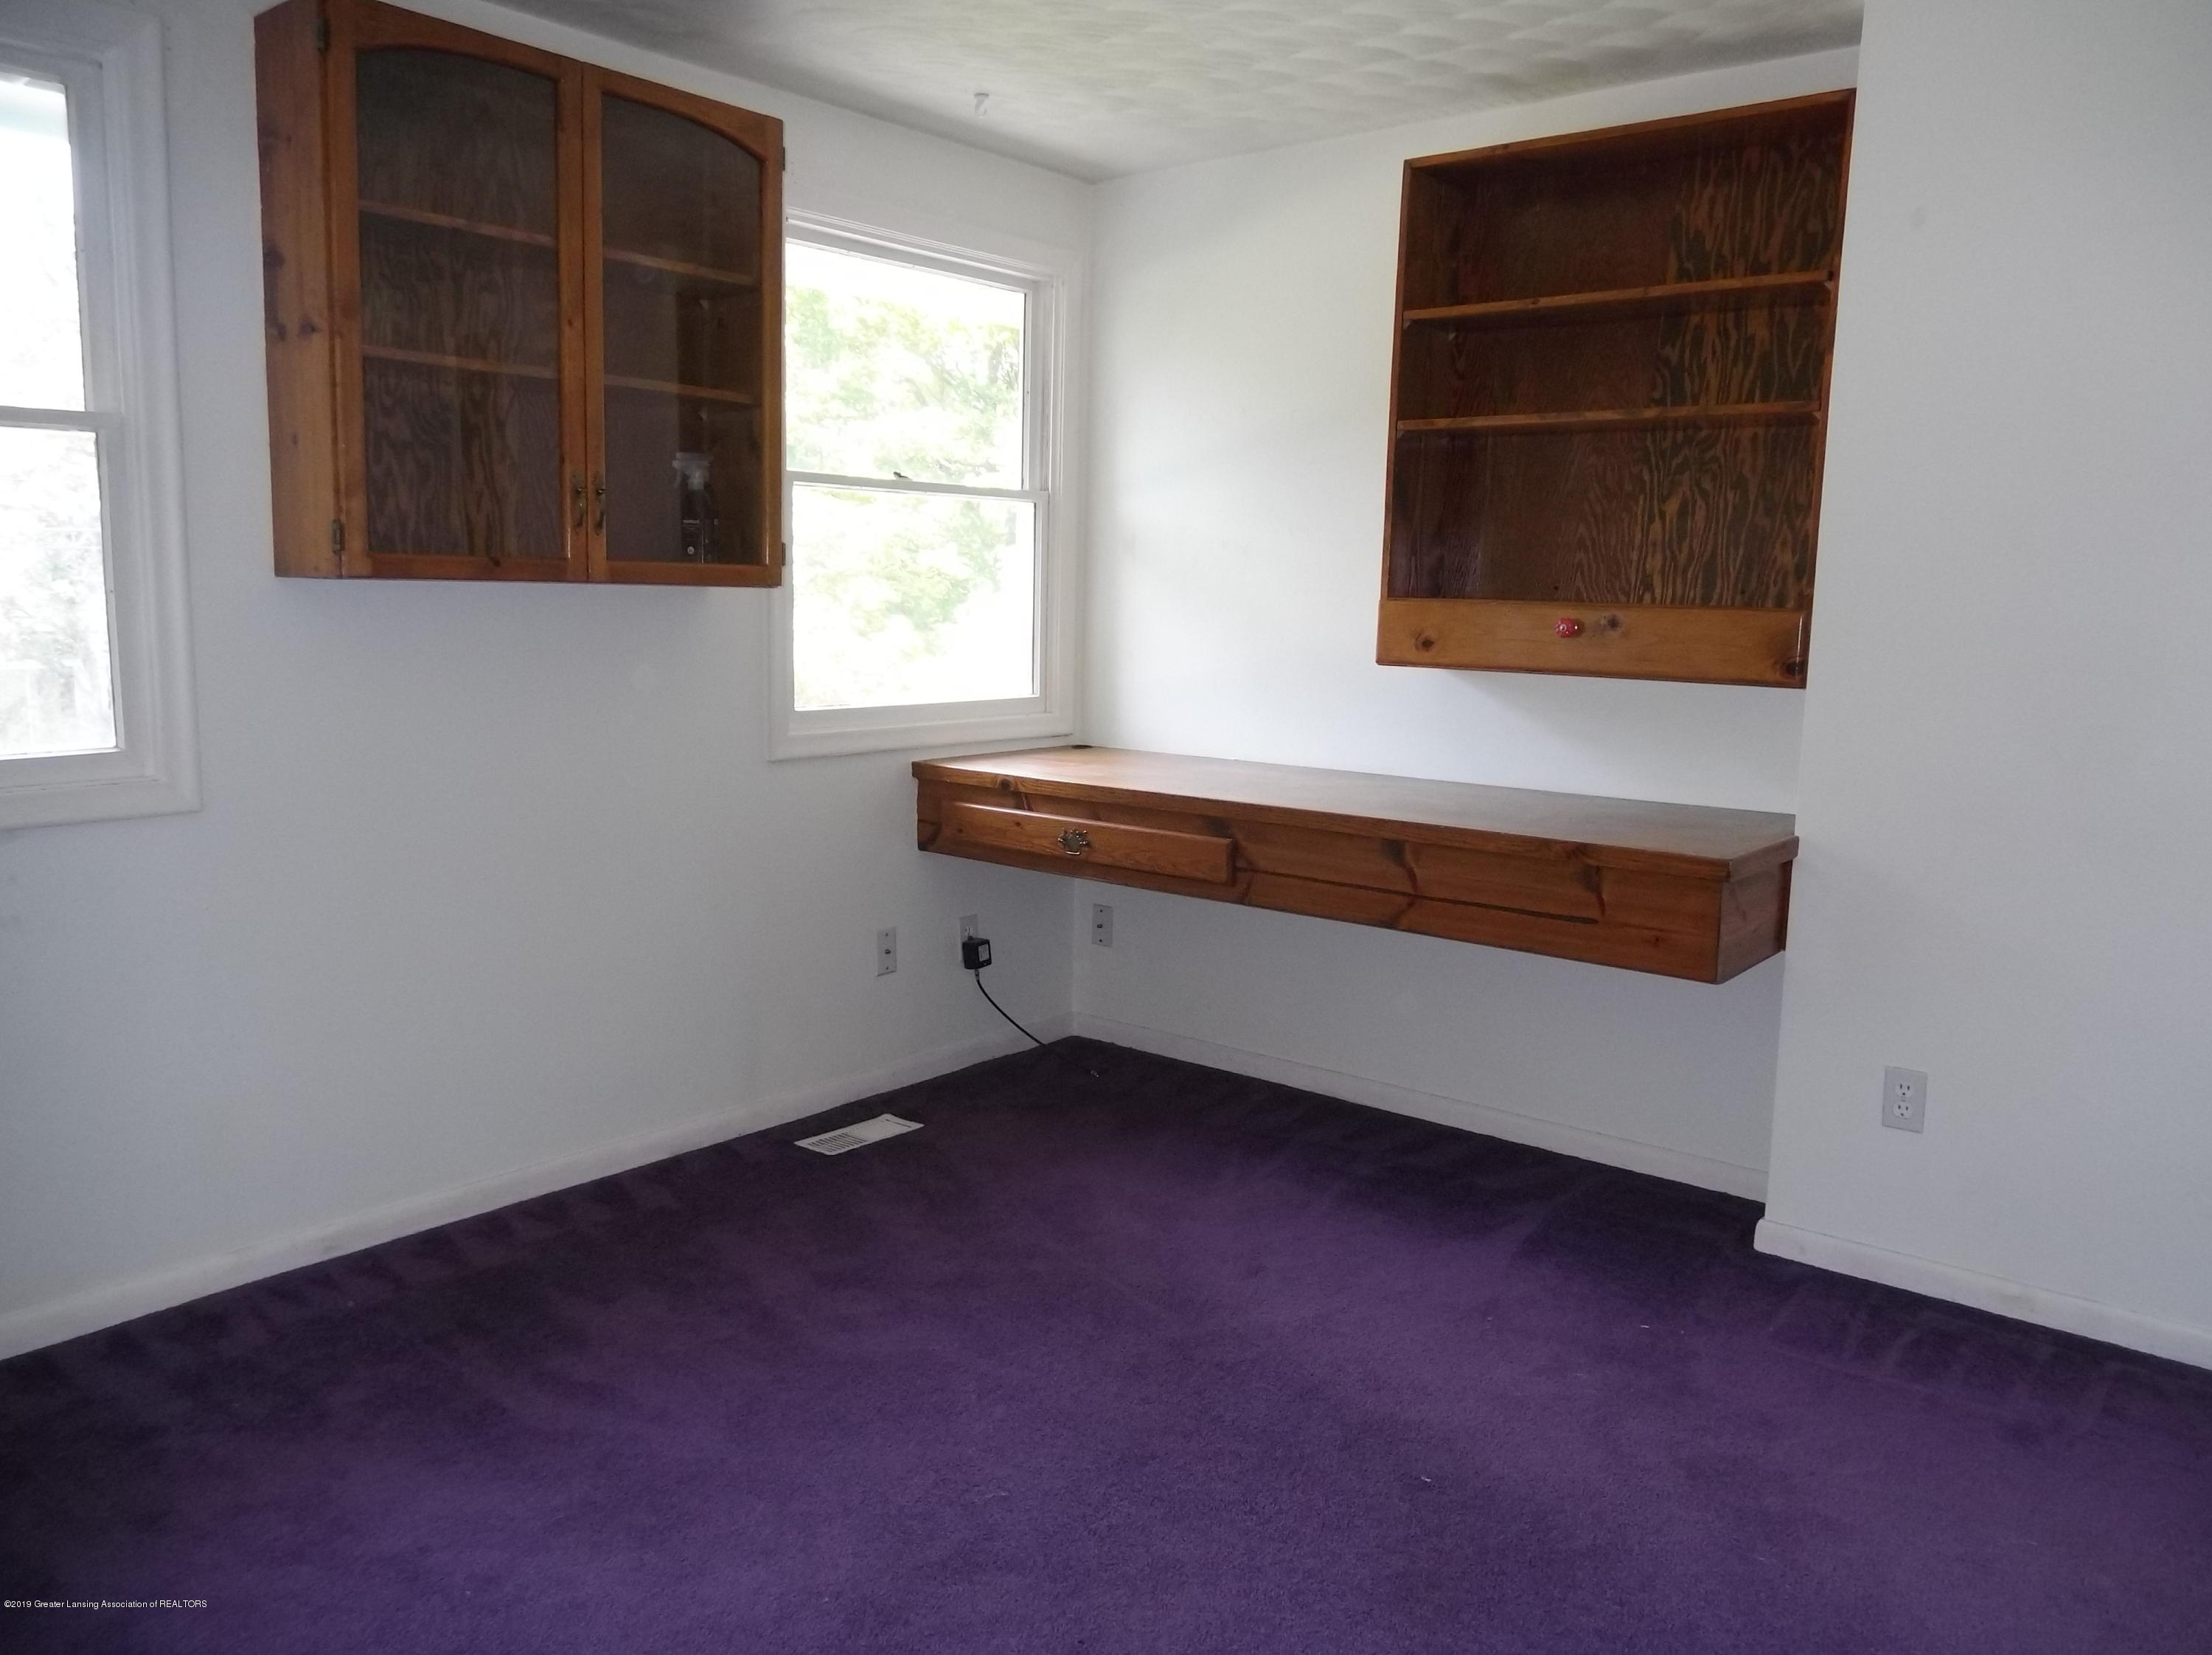 2971 Briarcliff Dr - Bedroom - 15